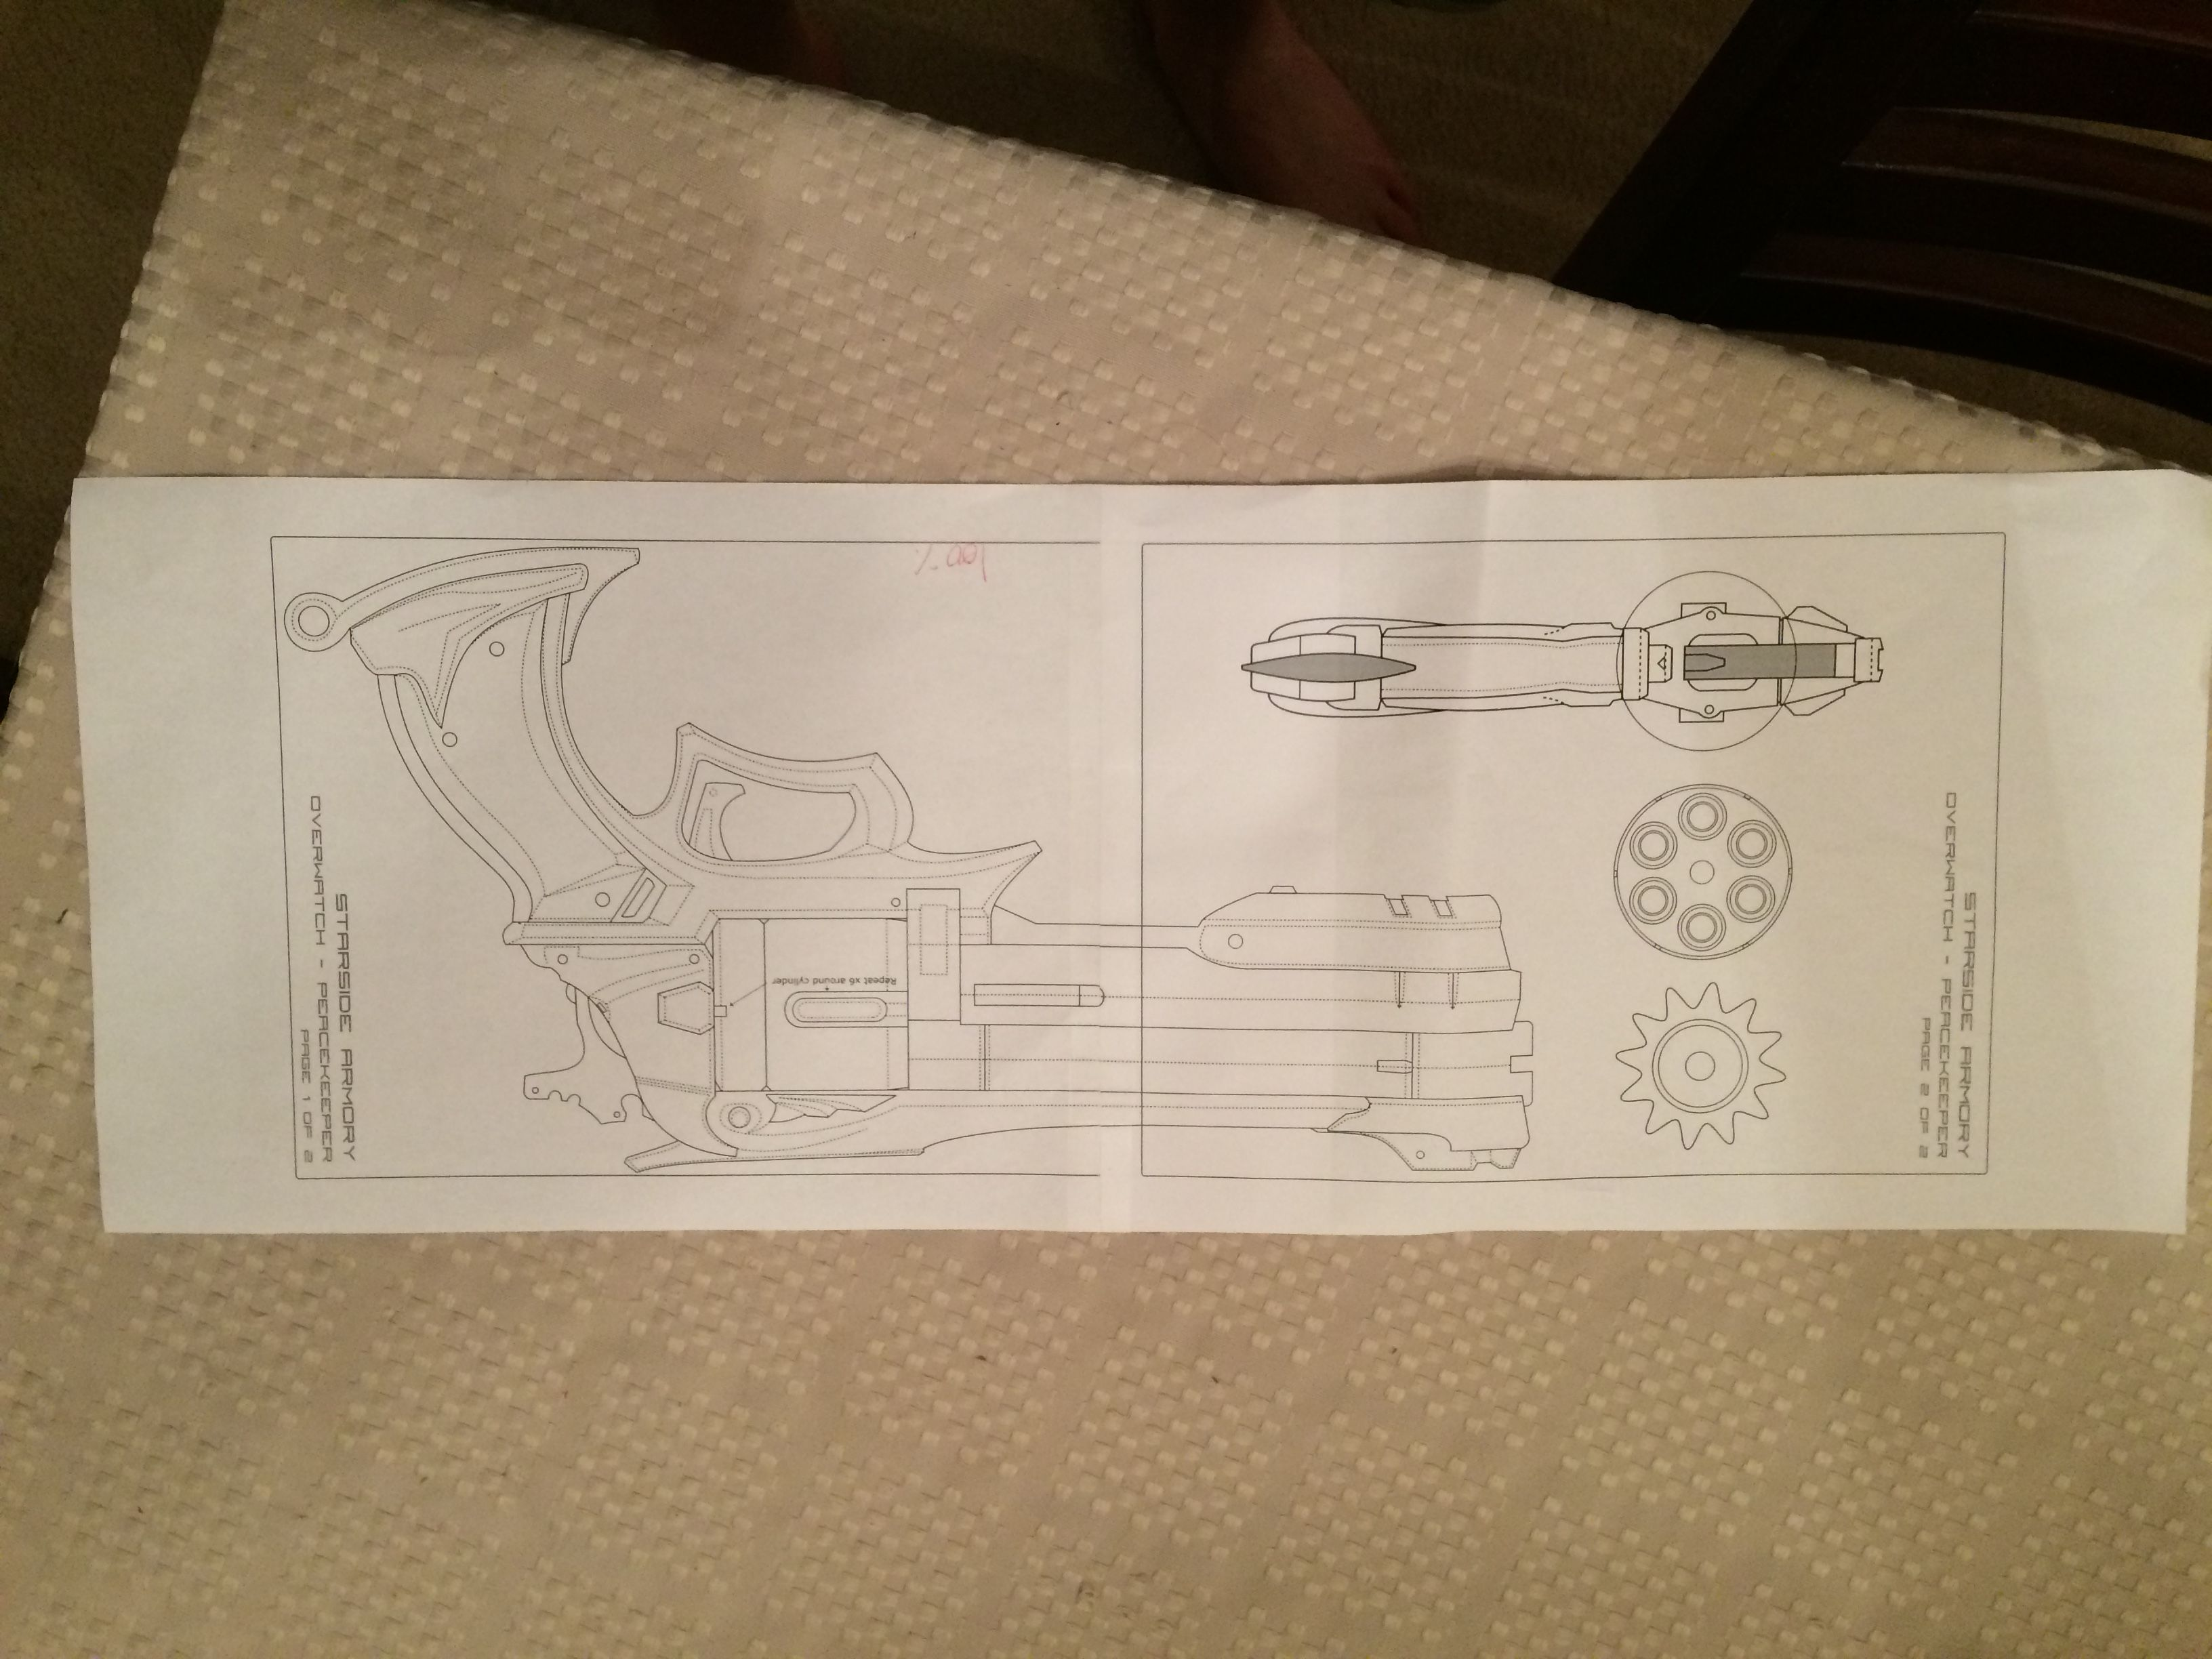 Mccree pistol blueprint ready to be made in foam mccree pinterest mccree pistol blueprint ready to be made in foam malvernweather Image collections